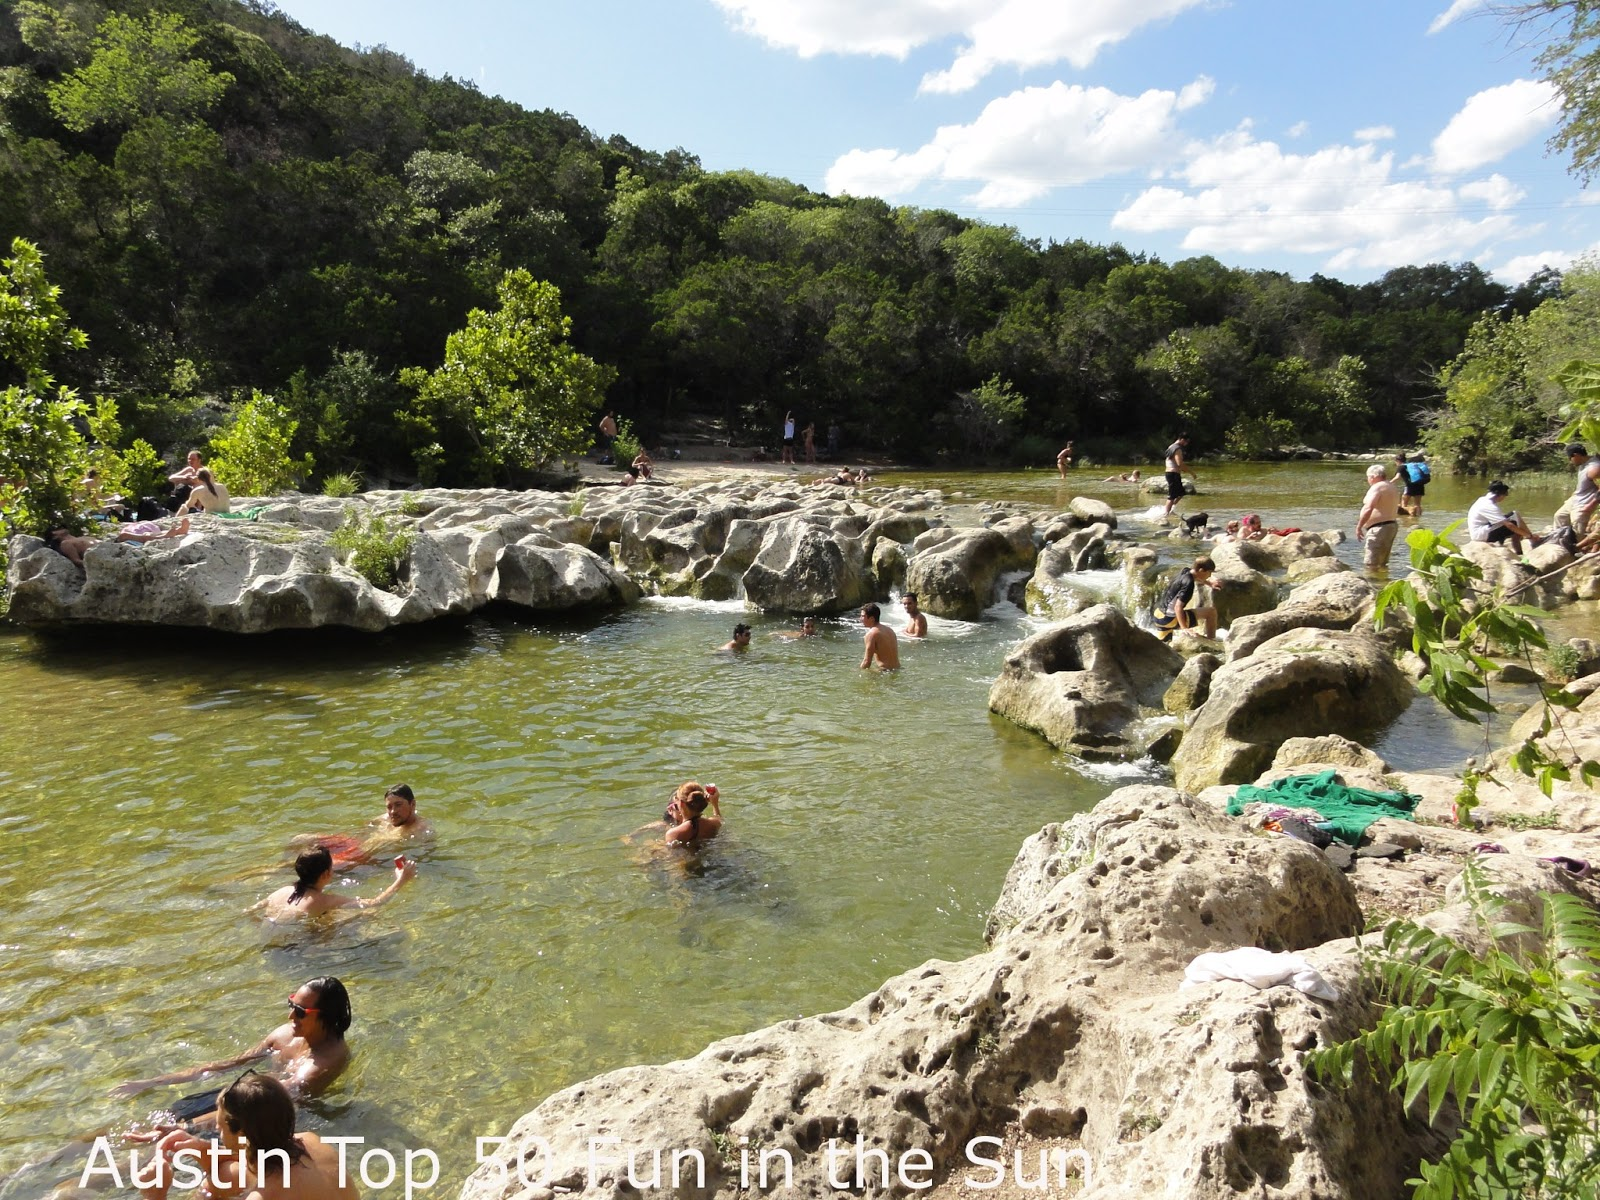 Austin top 50 fun in the sun 50 things to do in austin for Things to do near austin texas